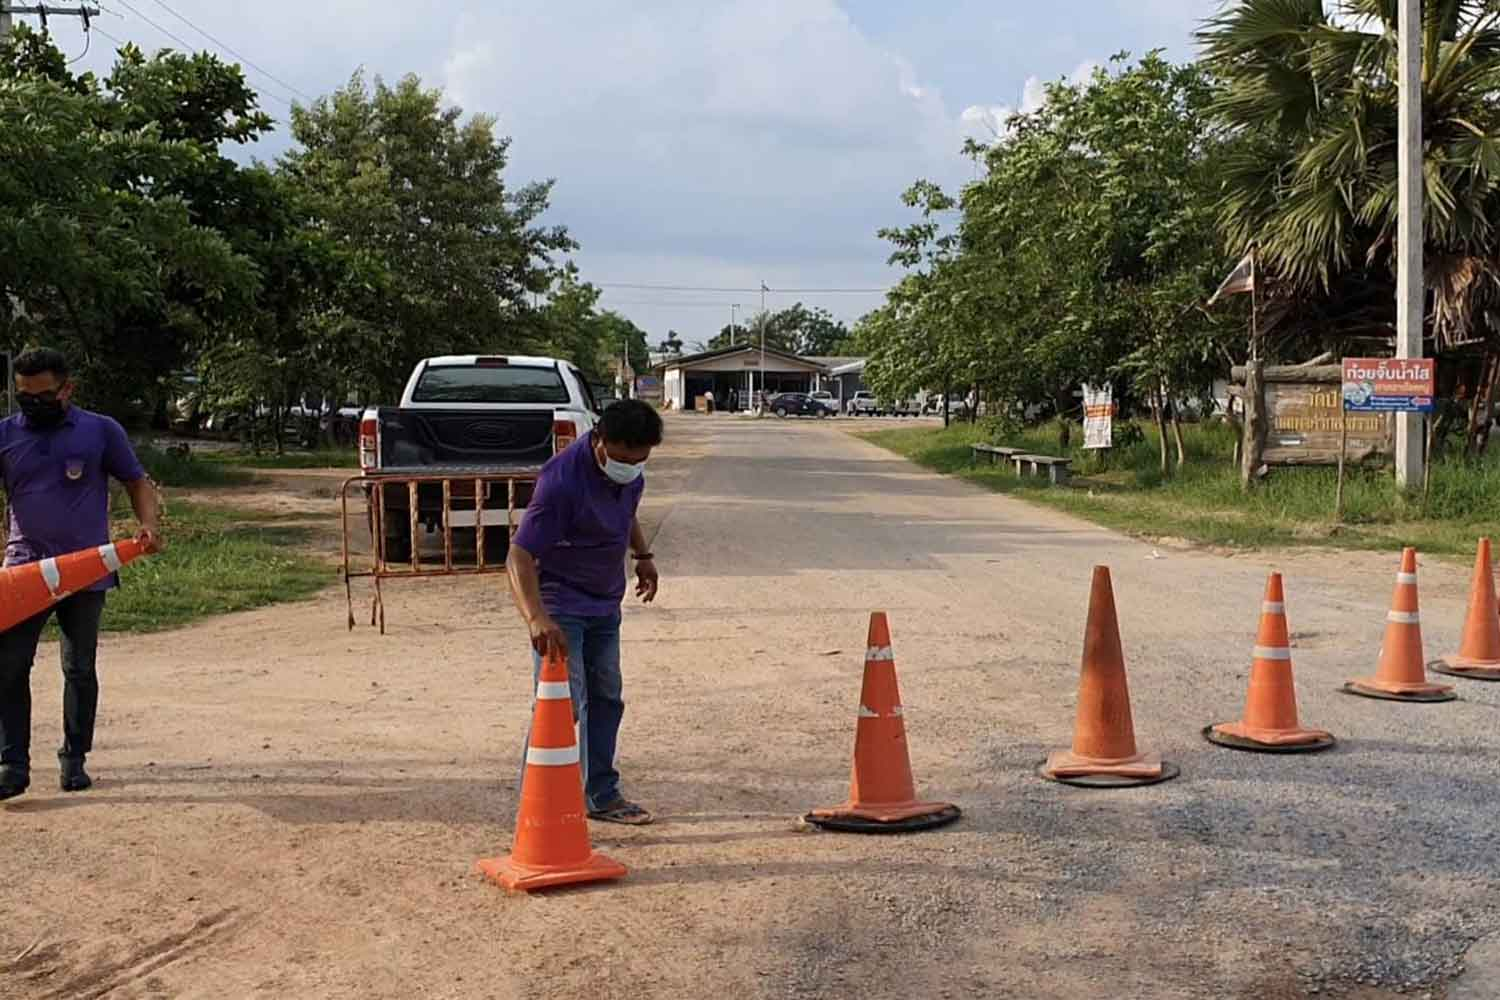 Traffic cones block the entrance to Ban Wang village in Nakhon Ratchasima's Non Thai district, which has been placed in lockdown after five people there were infected with Covid-19. (Photo: Prasit Tangprasert)